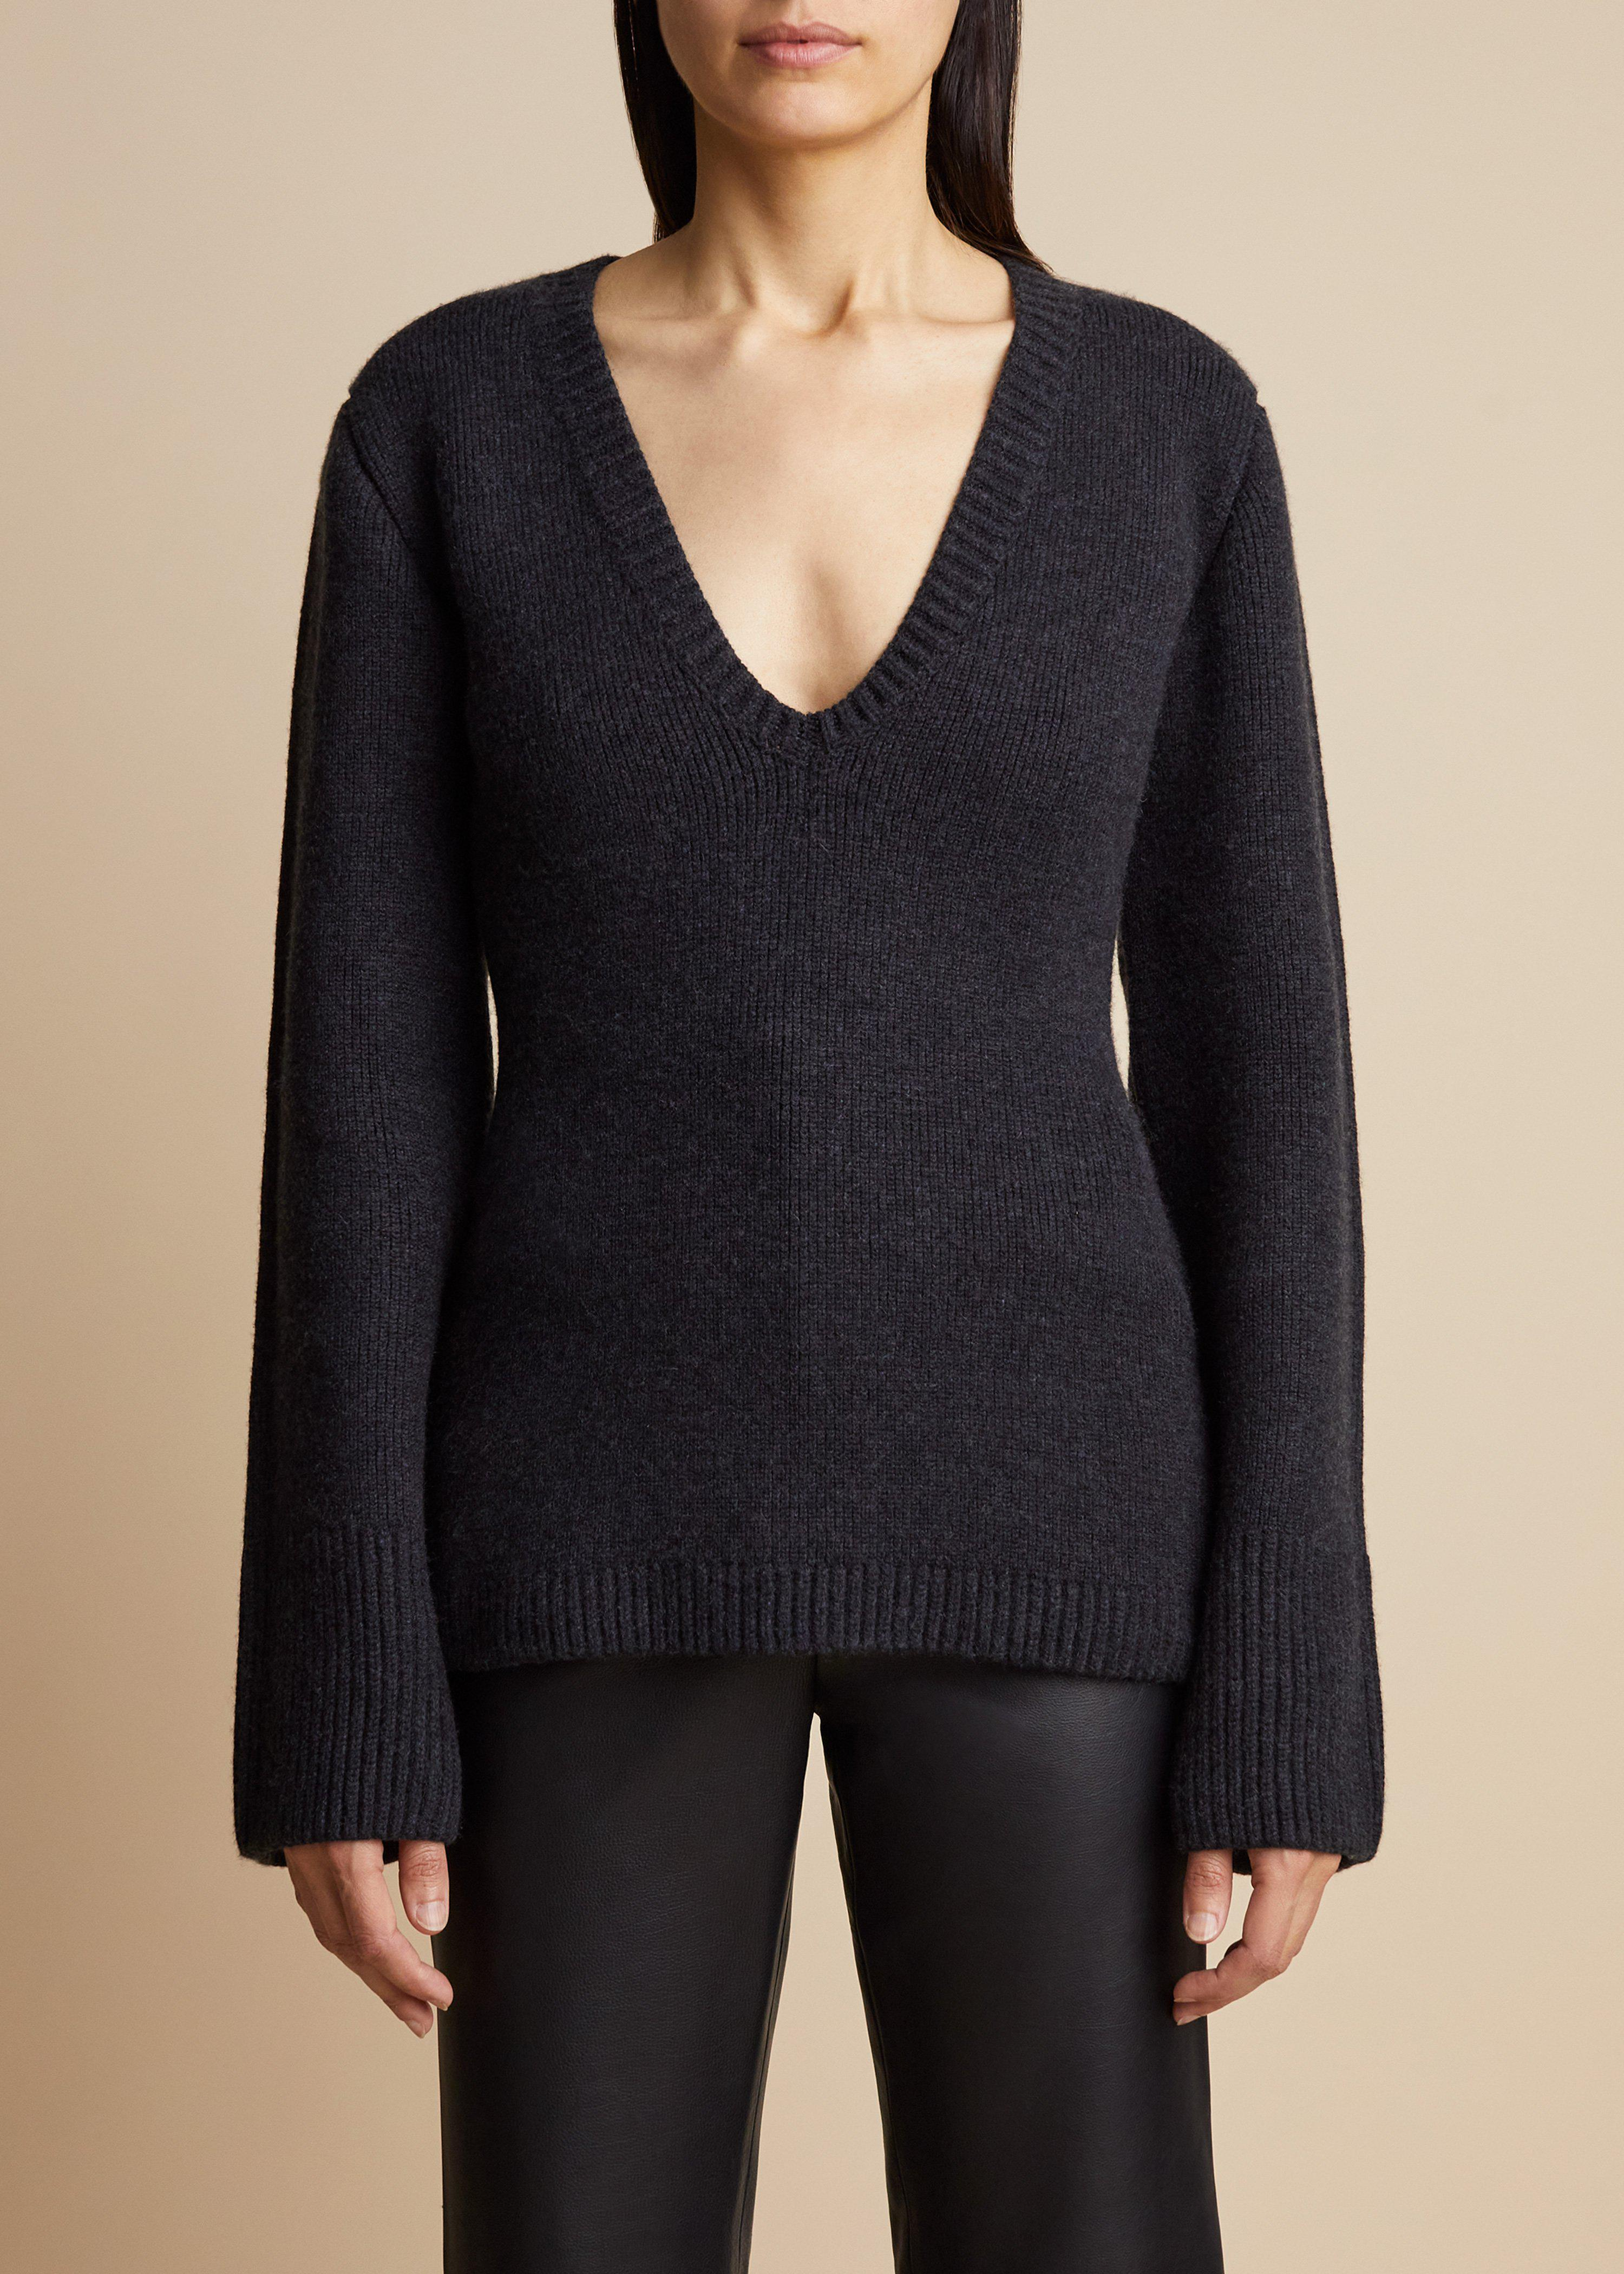 The Claudia Sweater in Charcoal